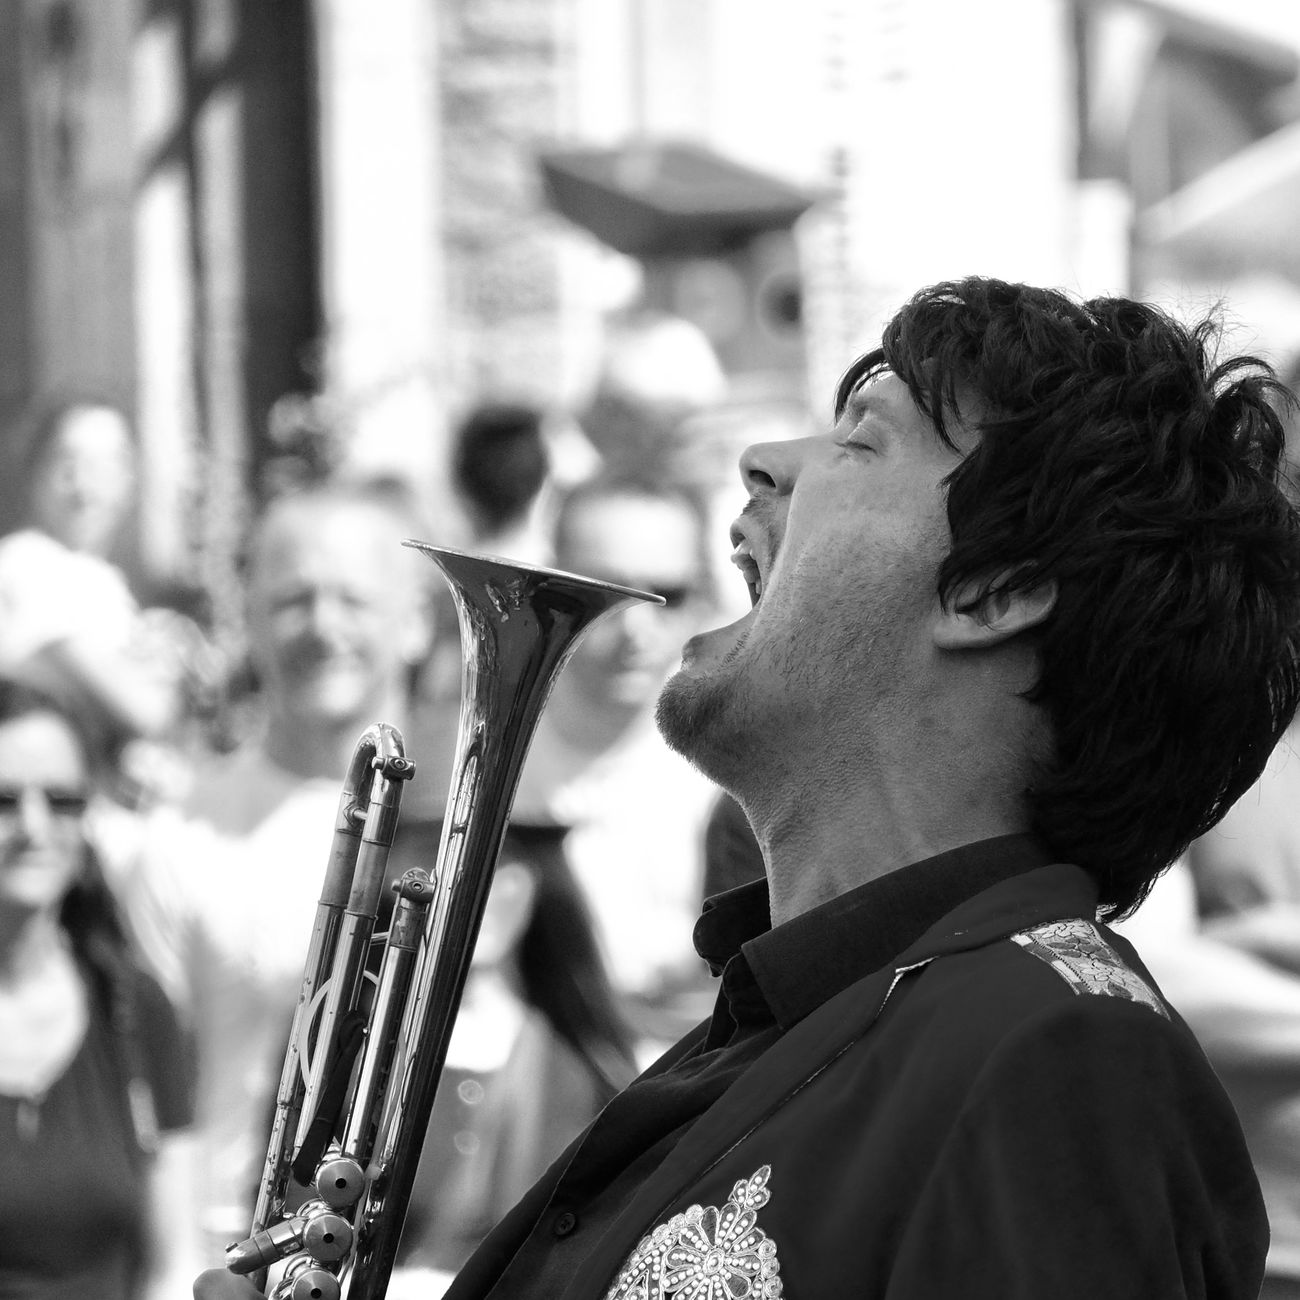 Black And White Photography Close-up Day Fanfare Focus On Foreground Music Musician One Person Outdoors Playing Real People Scream Side View Sing Uniform